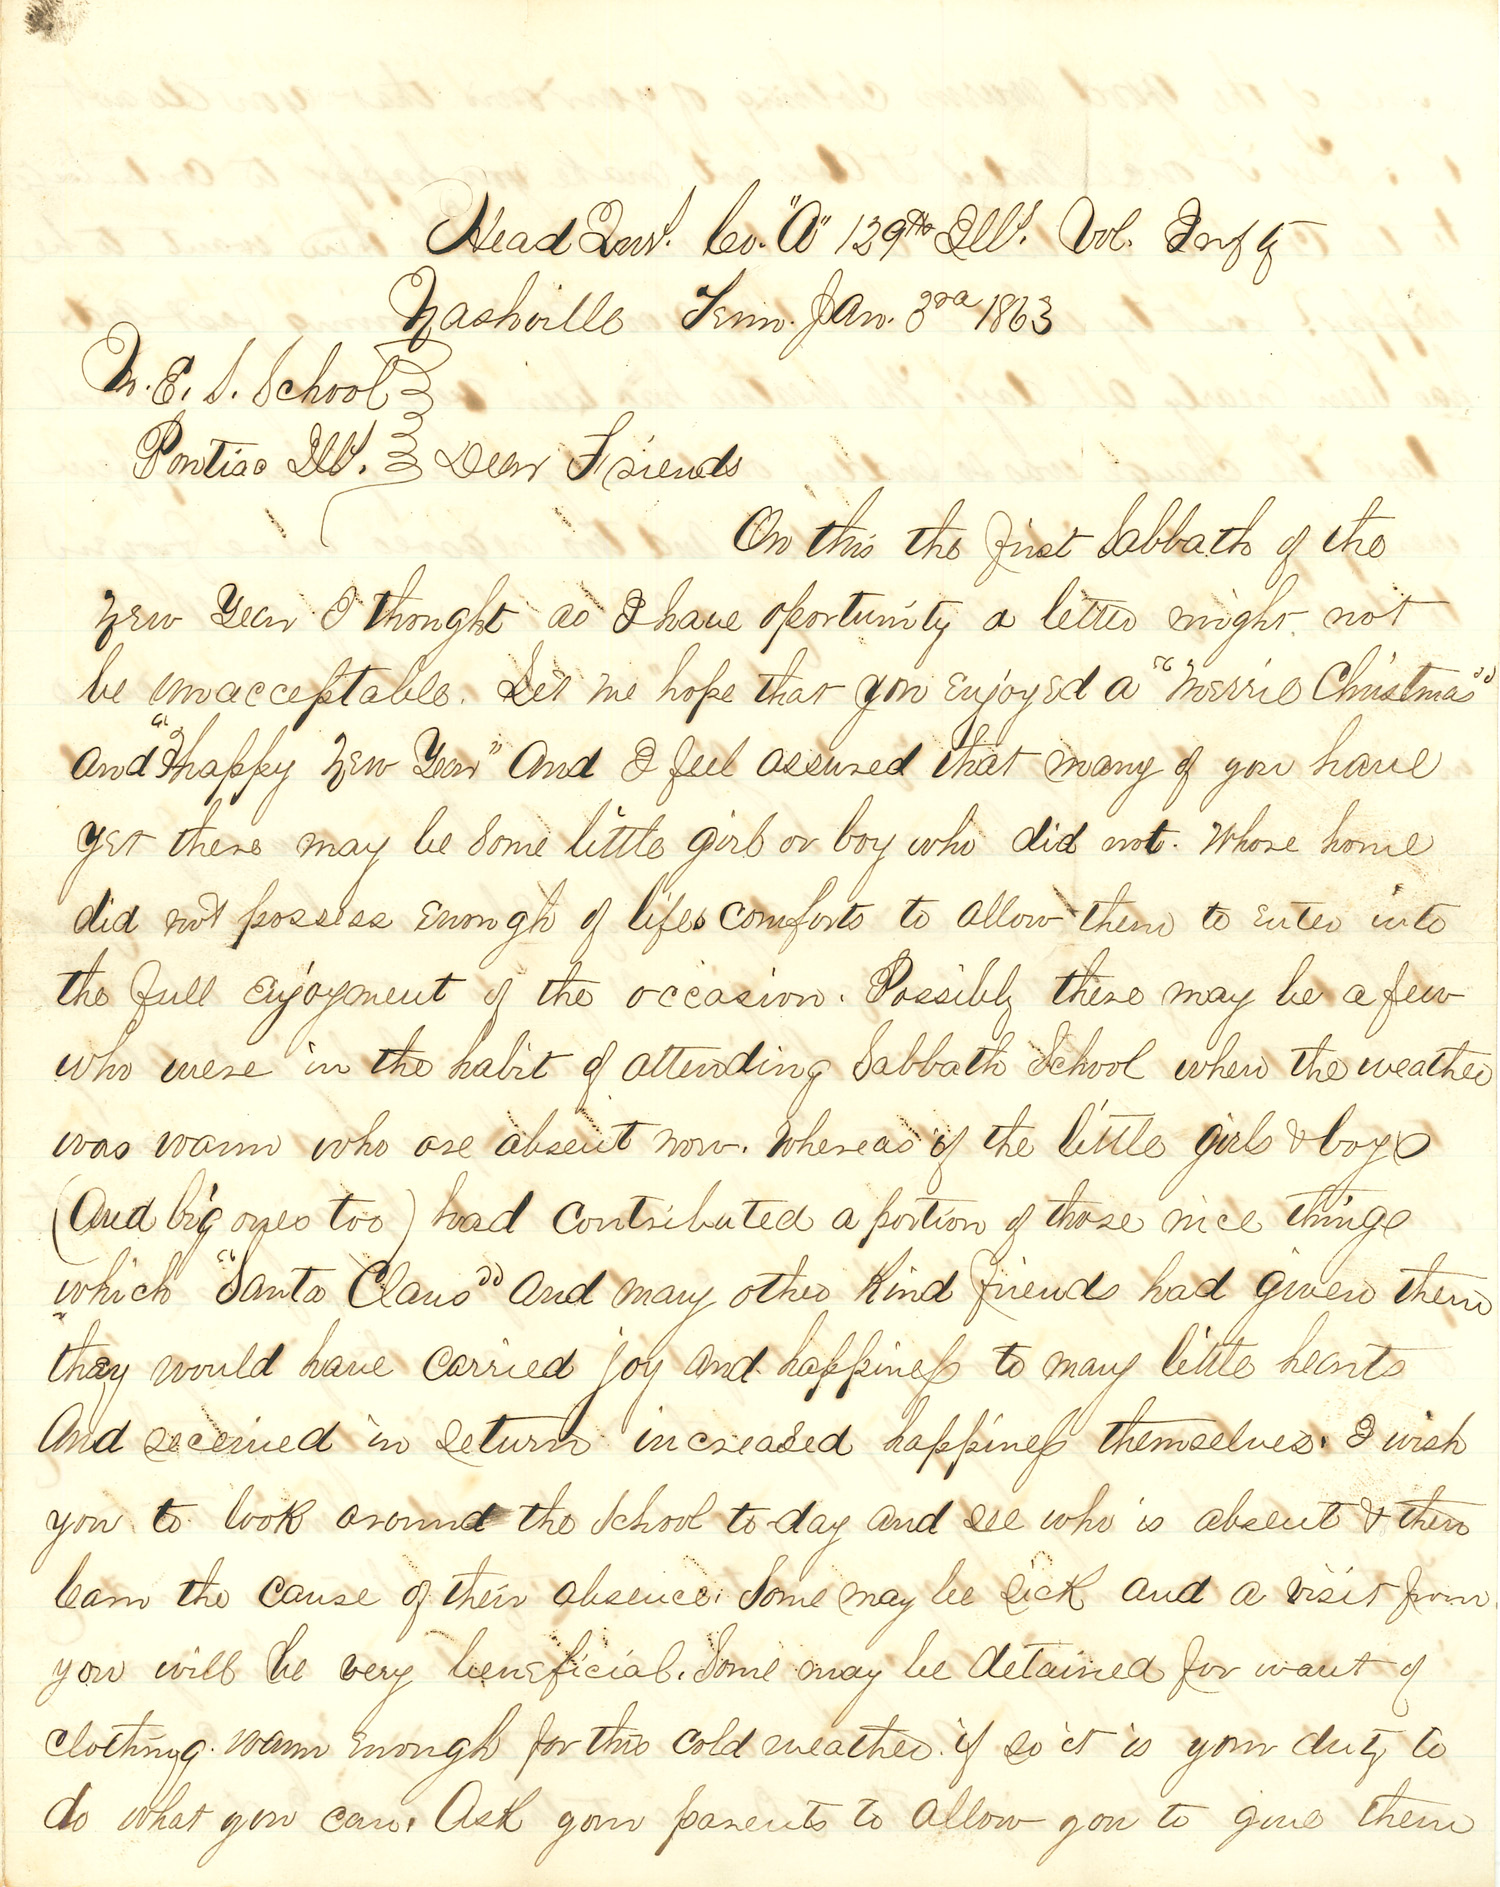 Joseph Culver Letter, January 3, 1863, Page 1